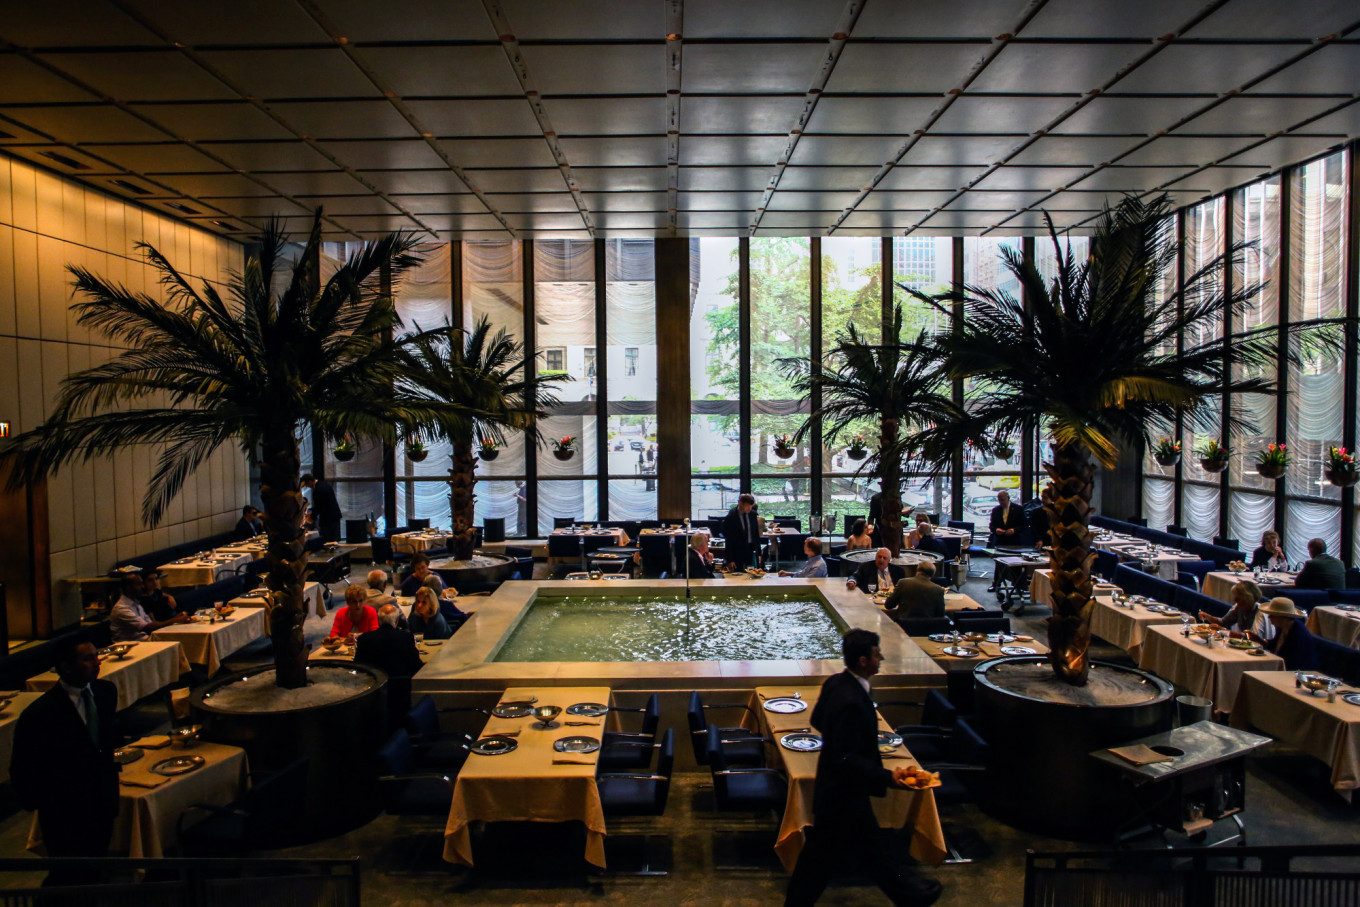 Four Seasons Restaurant, NYC Power Lunch Center, To Close